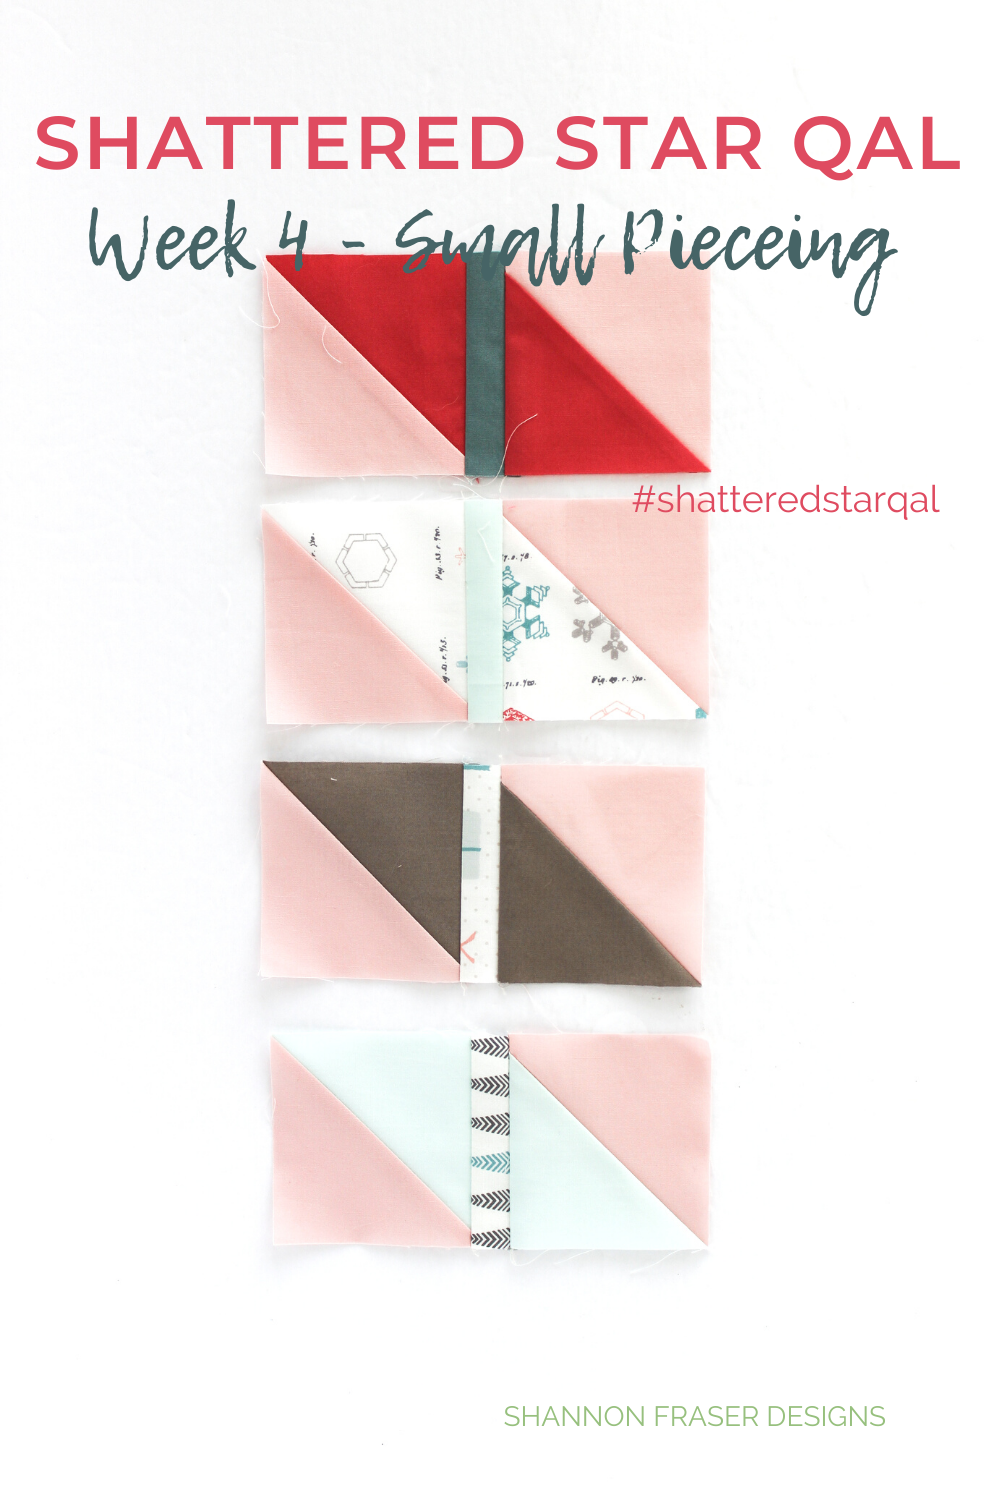 Half square triangle units for the Shattered Star quilt blocks | Shattered Star quilt along Week 4 - Small Piecing tips | Shannon Fraser Designs #halfsquaretriangles